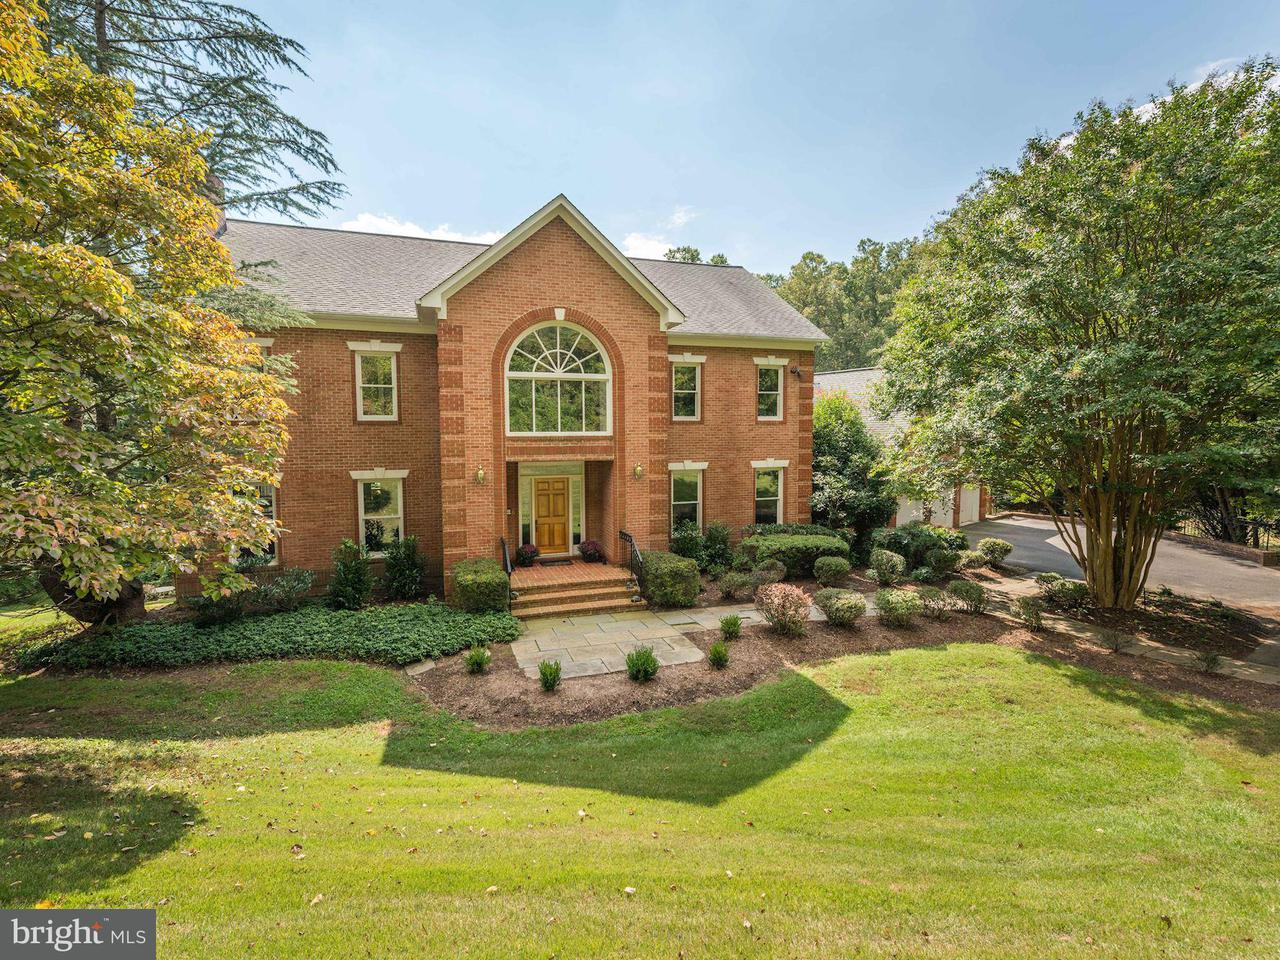 Single Family Home for Sale at 1021 Towlston Road 1021 Towlston Road McLean, Virginia 22102 United States